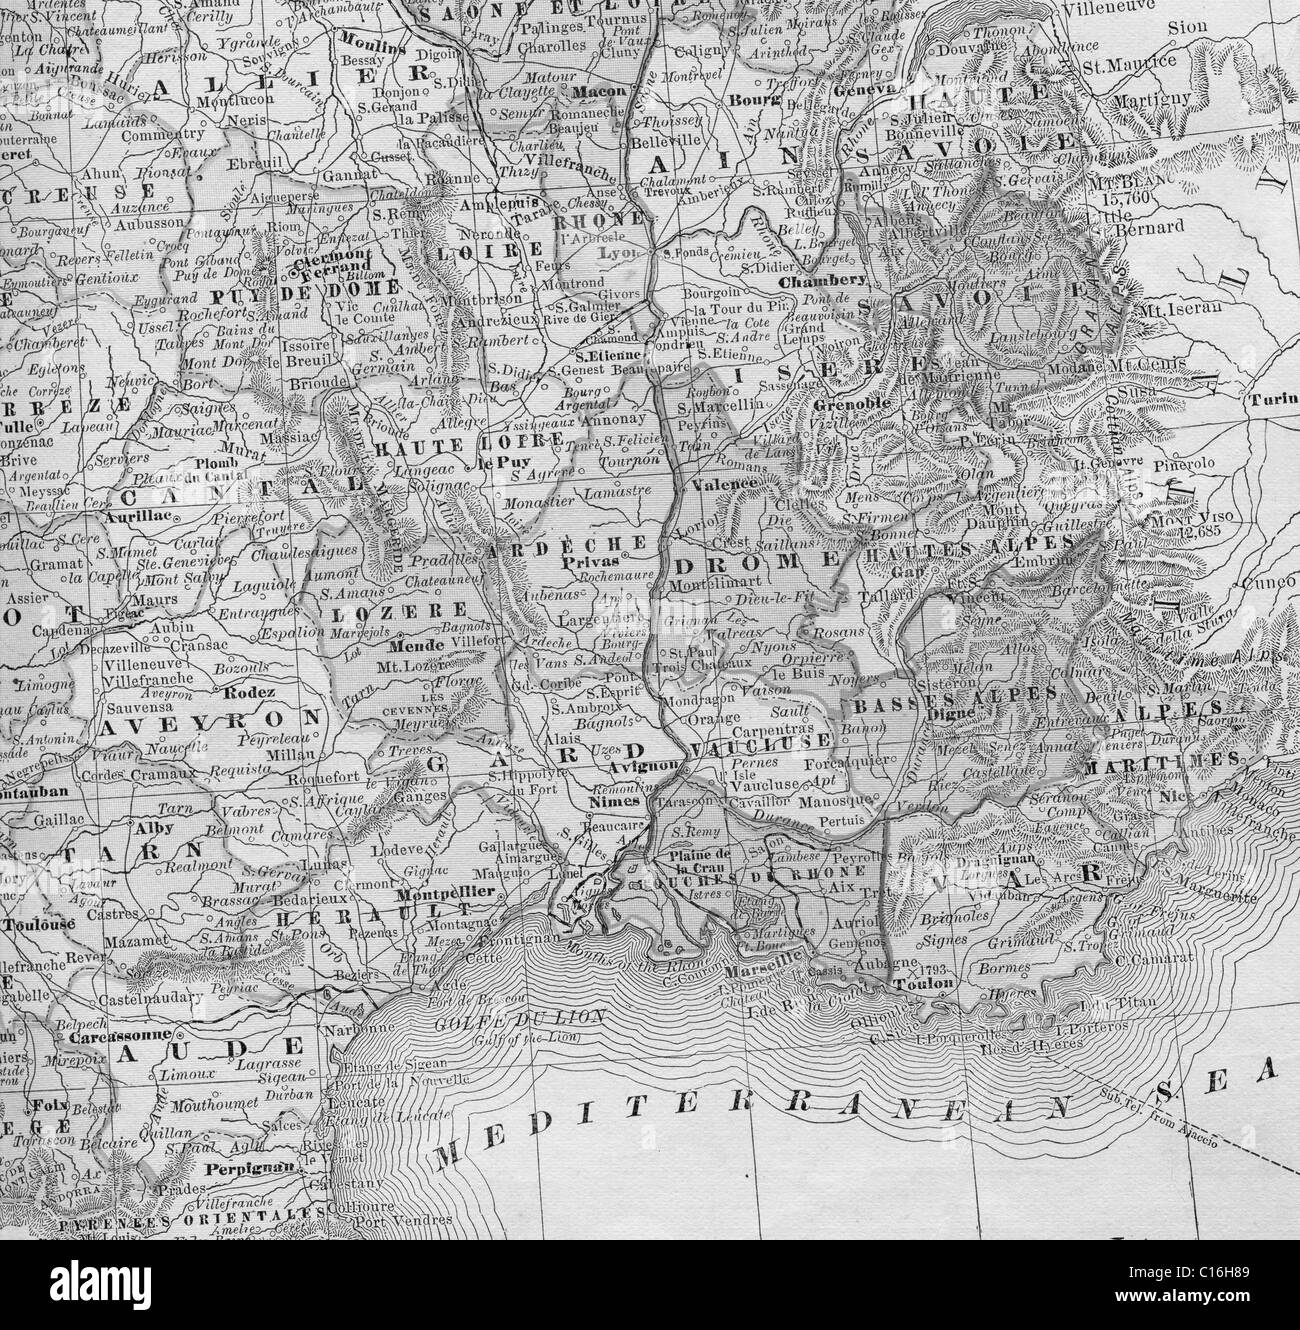 Detailed Map Of Southern France.Old Map Of Southern France From Original Geography Textbook 1884